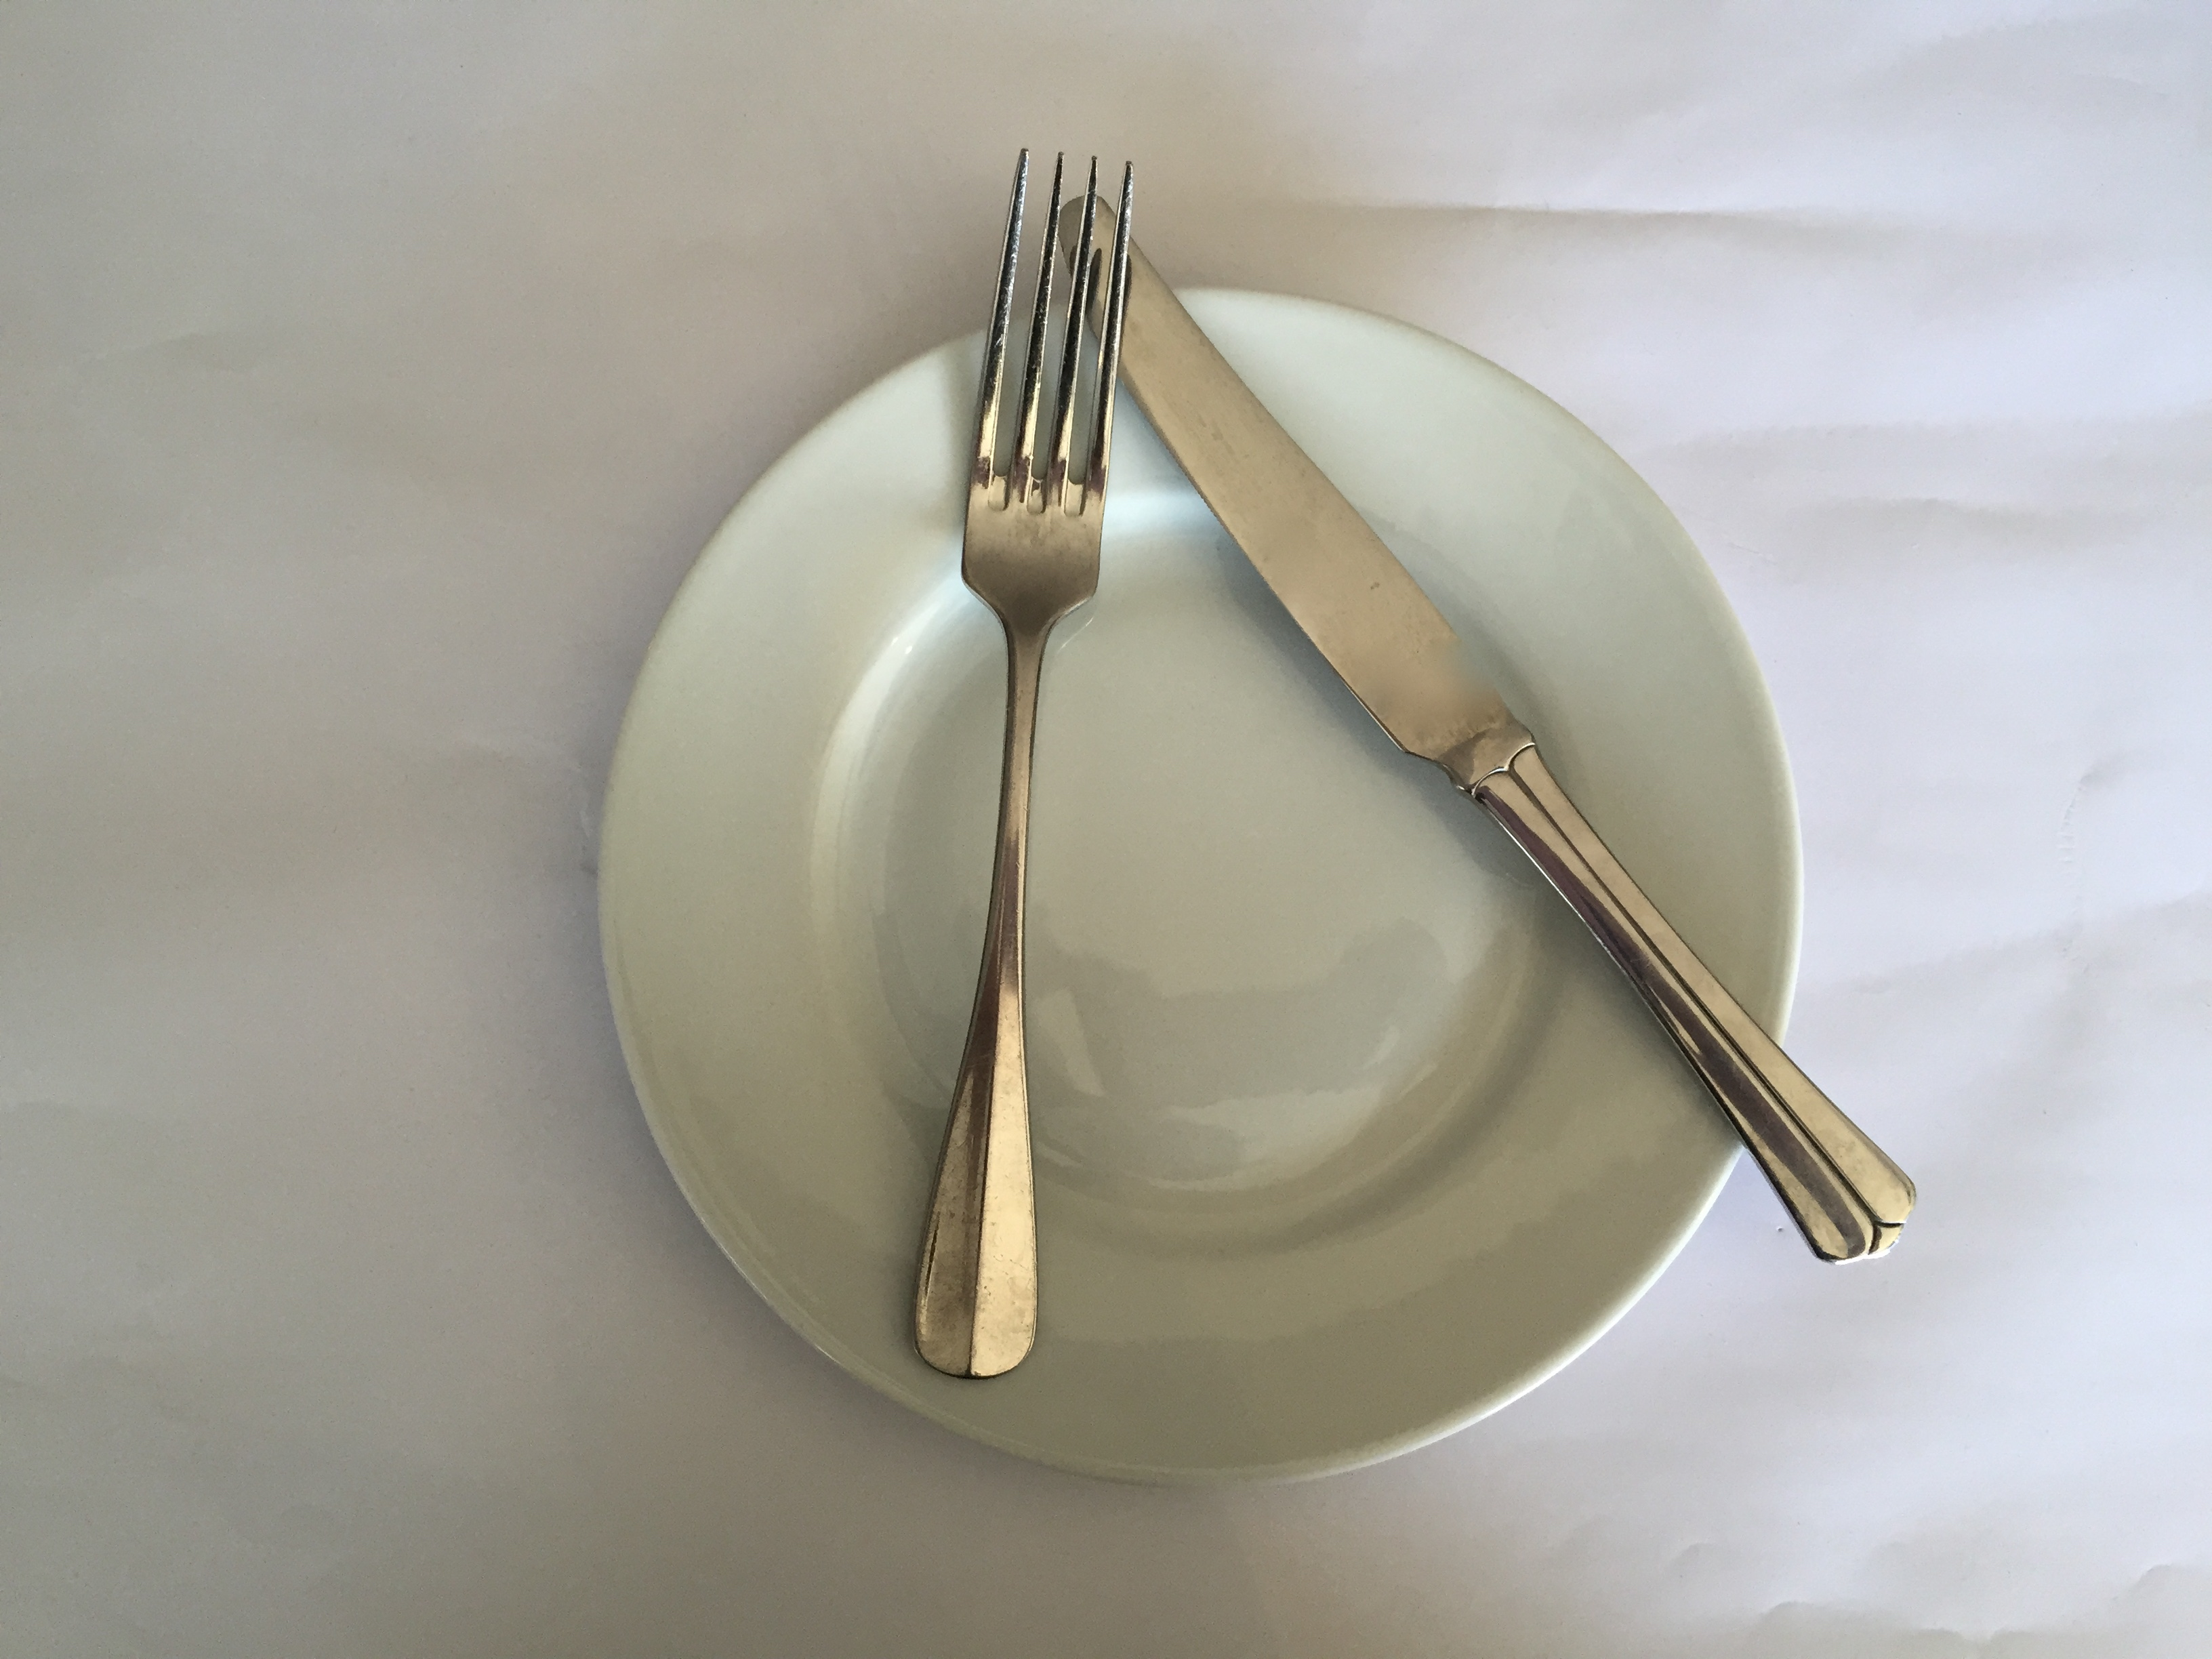 Table Manners Spoon And Fork Positions - Best Fork 2018